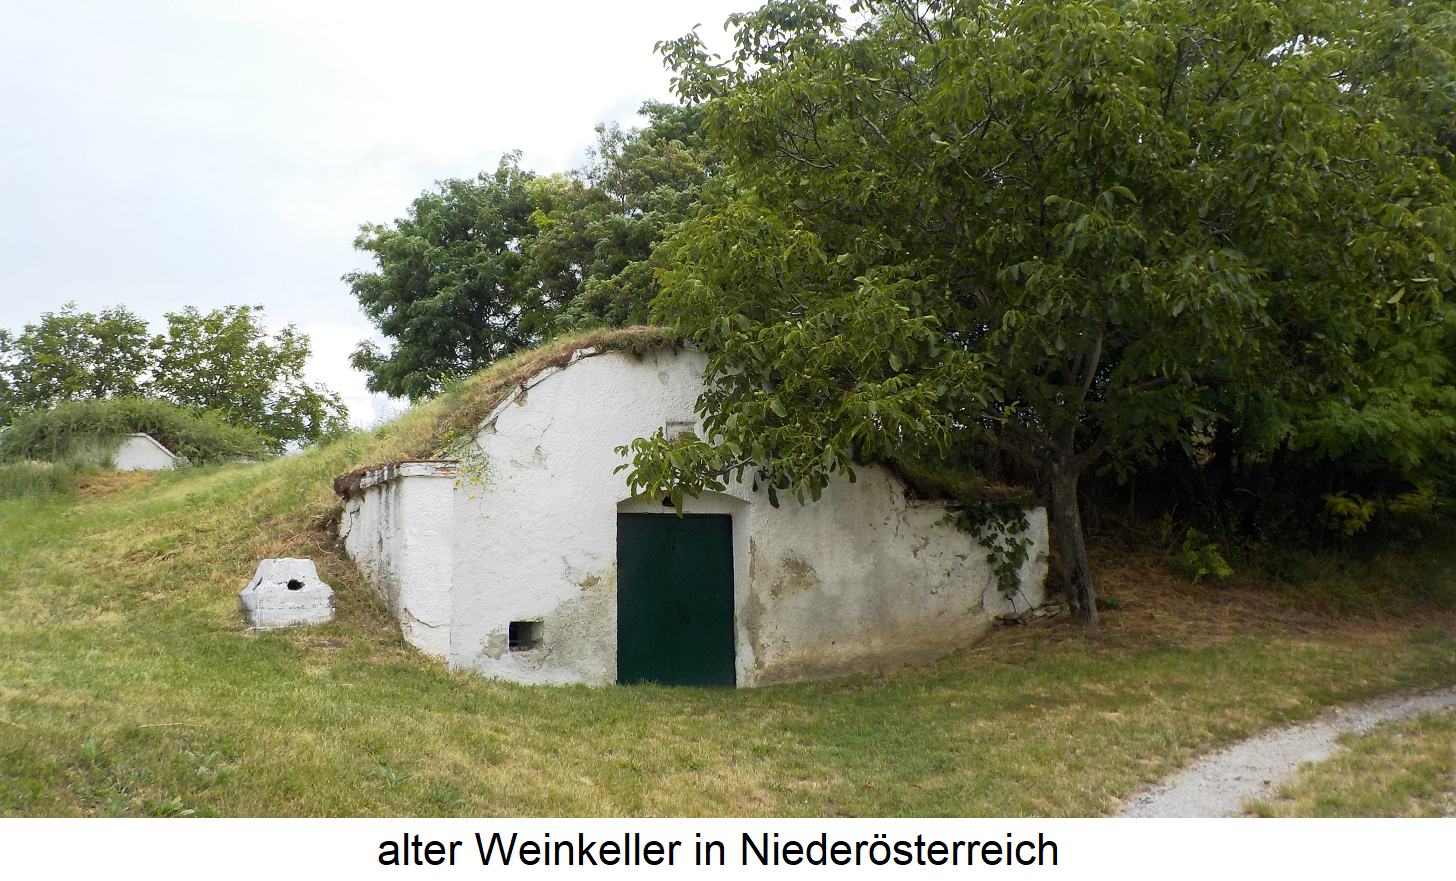 Customs in viticulture - old wine cellar (earth cellar) in Lower Austria